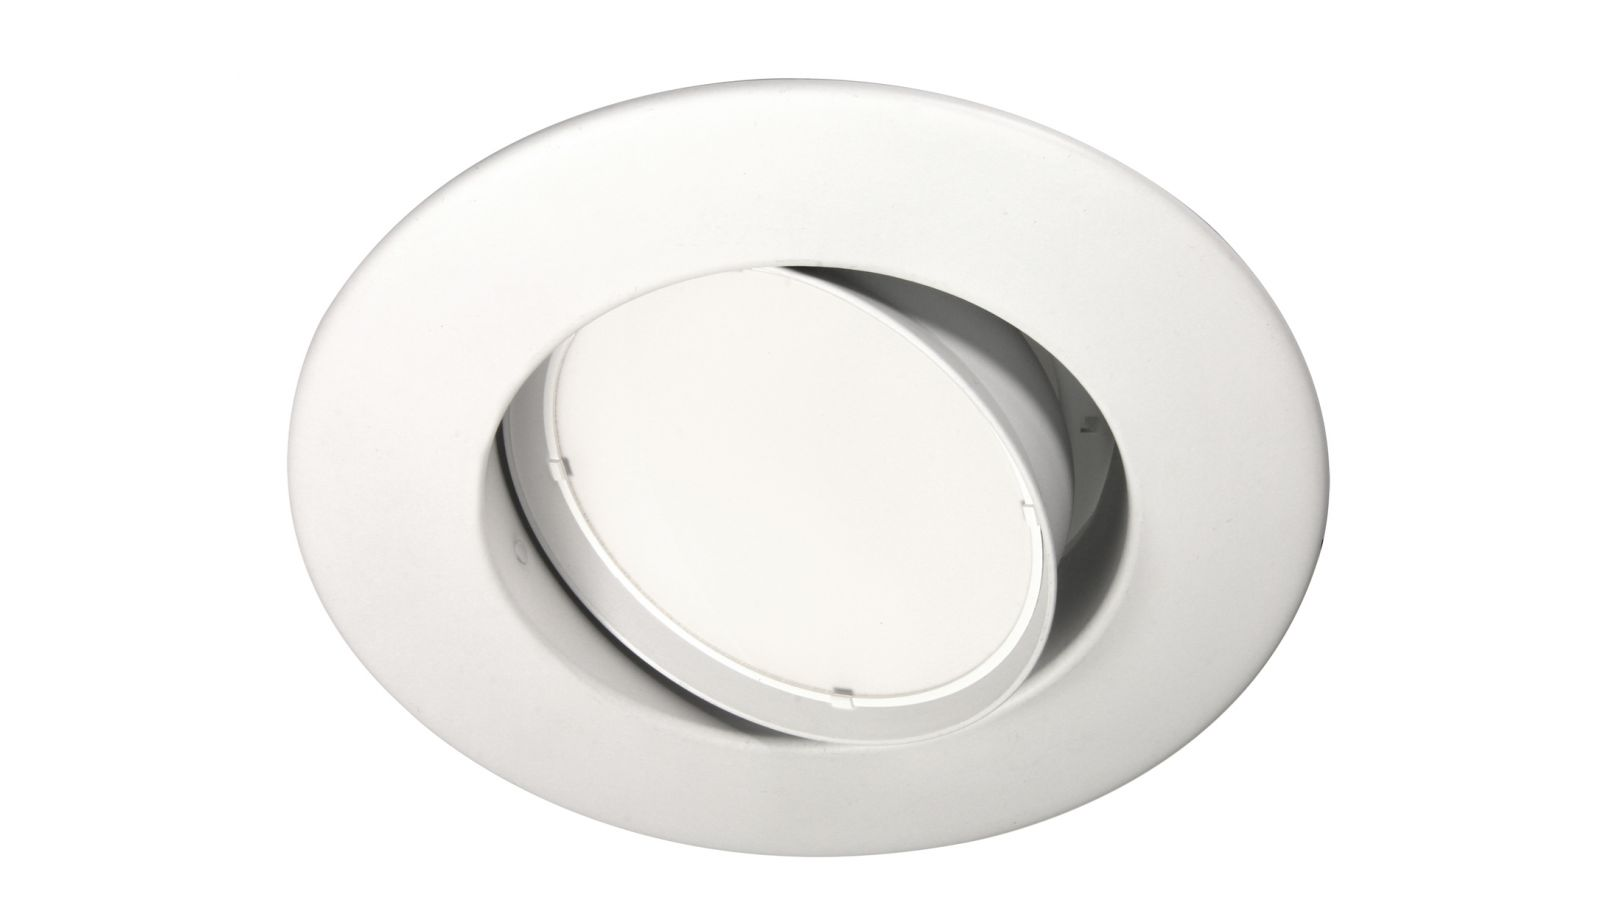 LED Adjustable Downlight Retrofit w/ sunset dimming